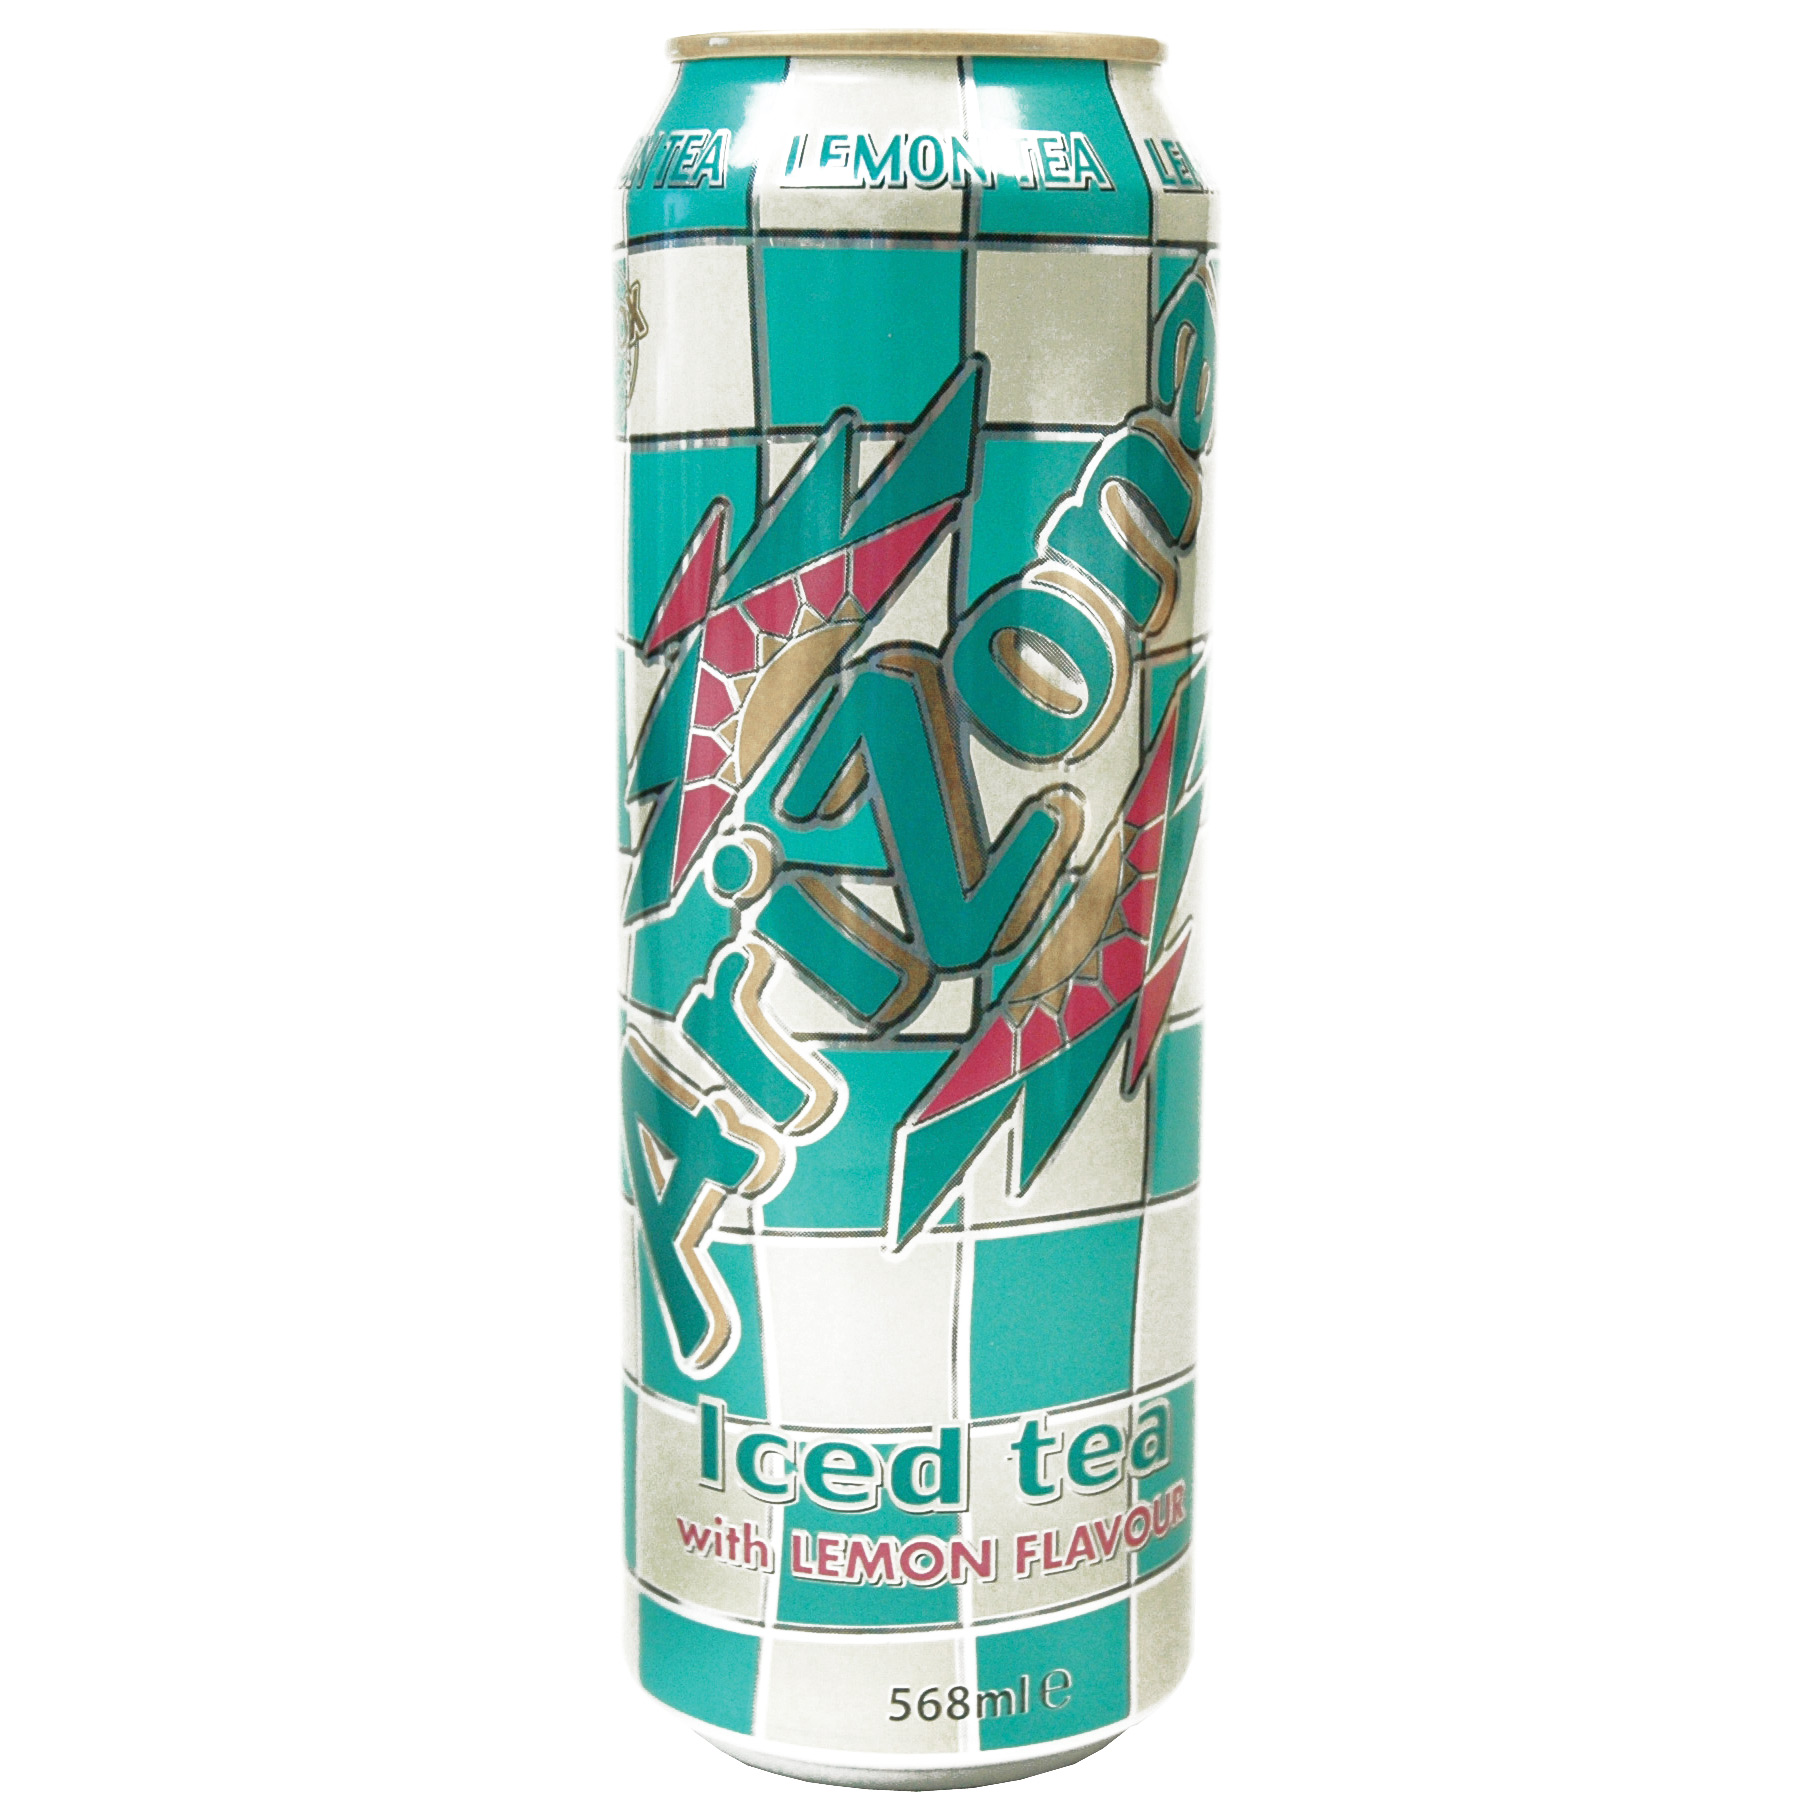 img/sortiment/arizona-lemon-iced-tea-dose1.jpg